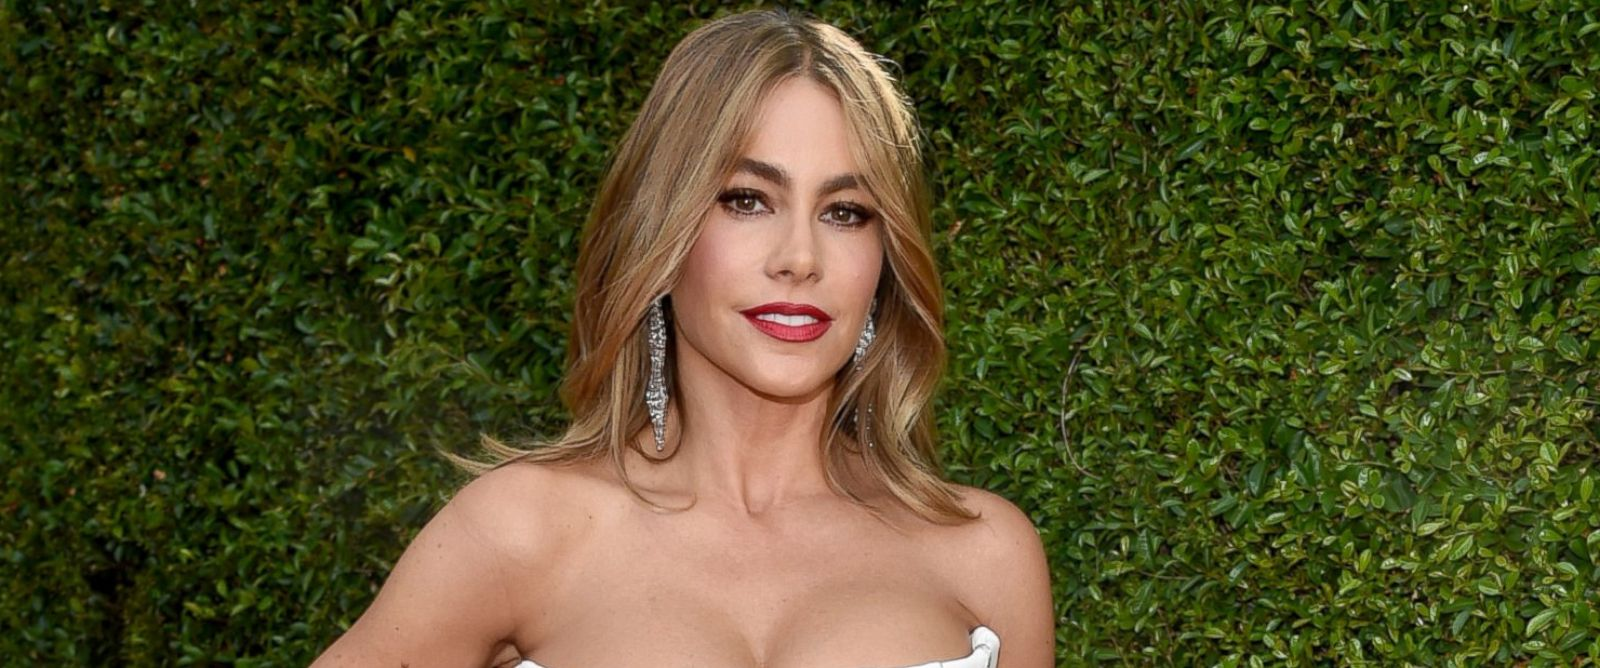 PHOTO: Sofia Vergara arrives at the 66th Primetime Emmy Awards at the Nokia Theatre L.A. Live, Aug. 25, 2014, in Los Angeles.